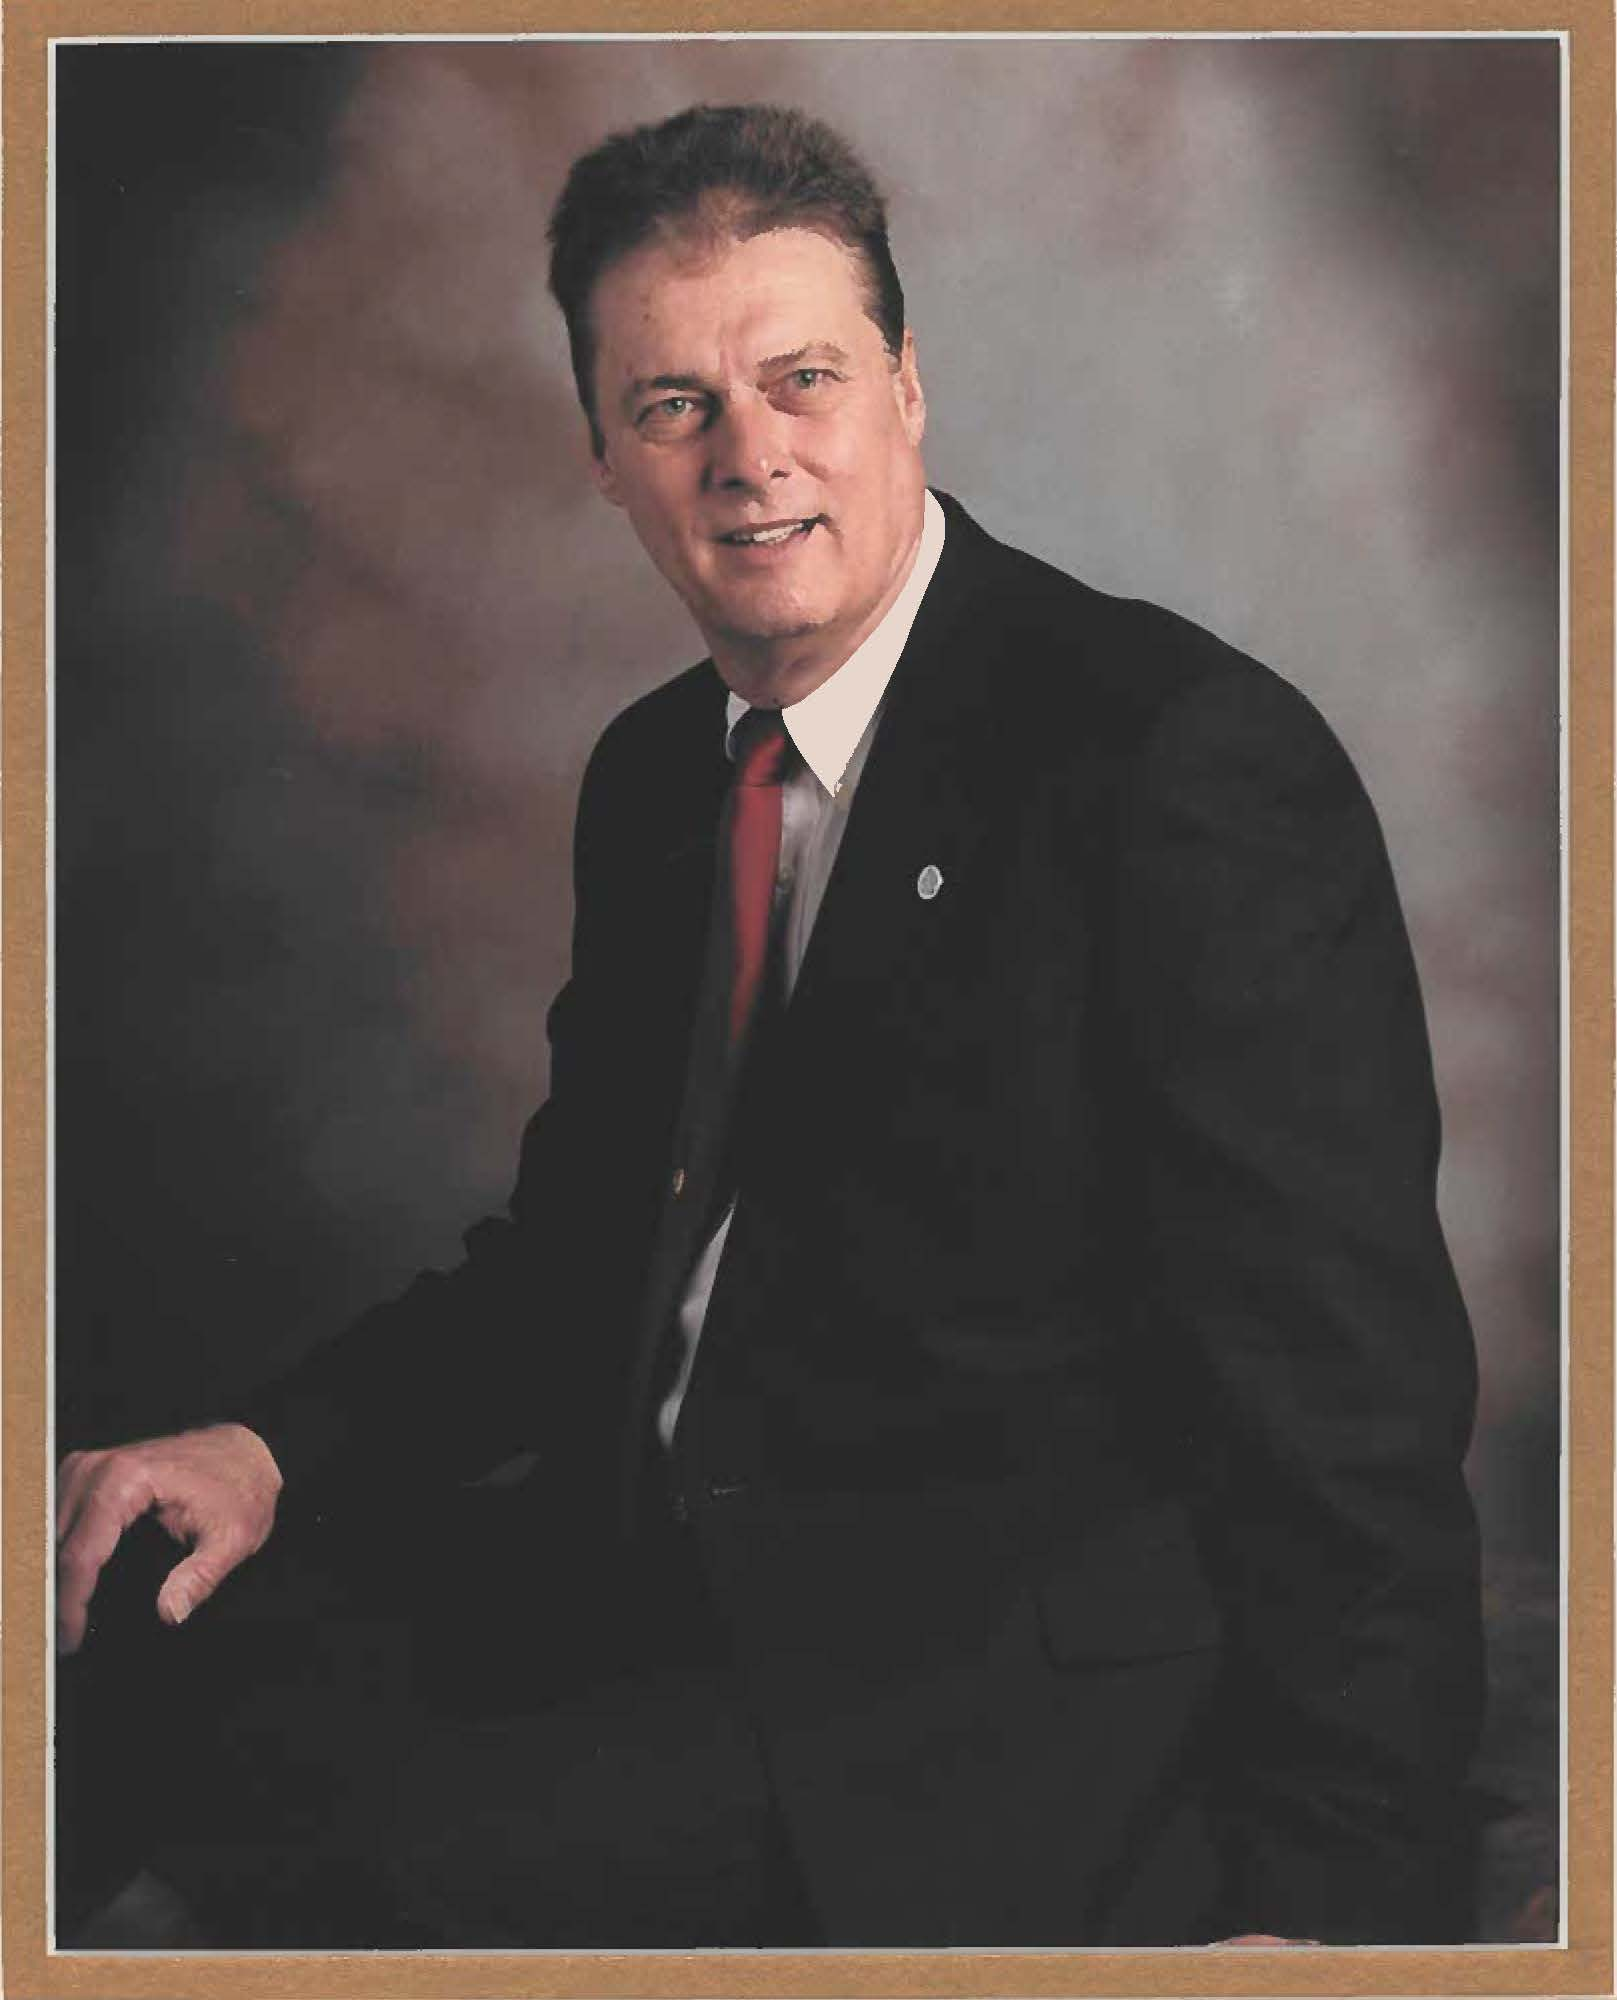 Mayor Del Dunn